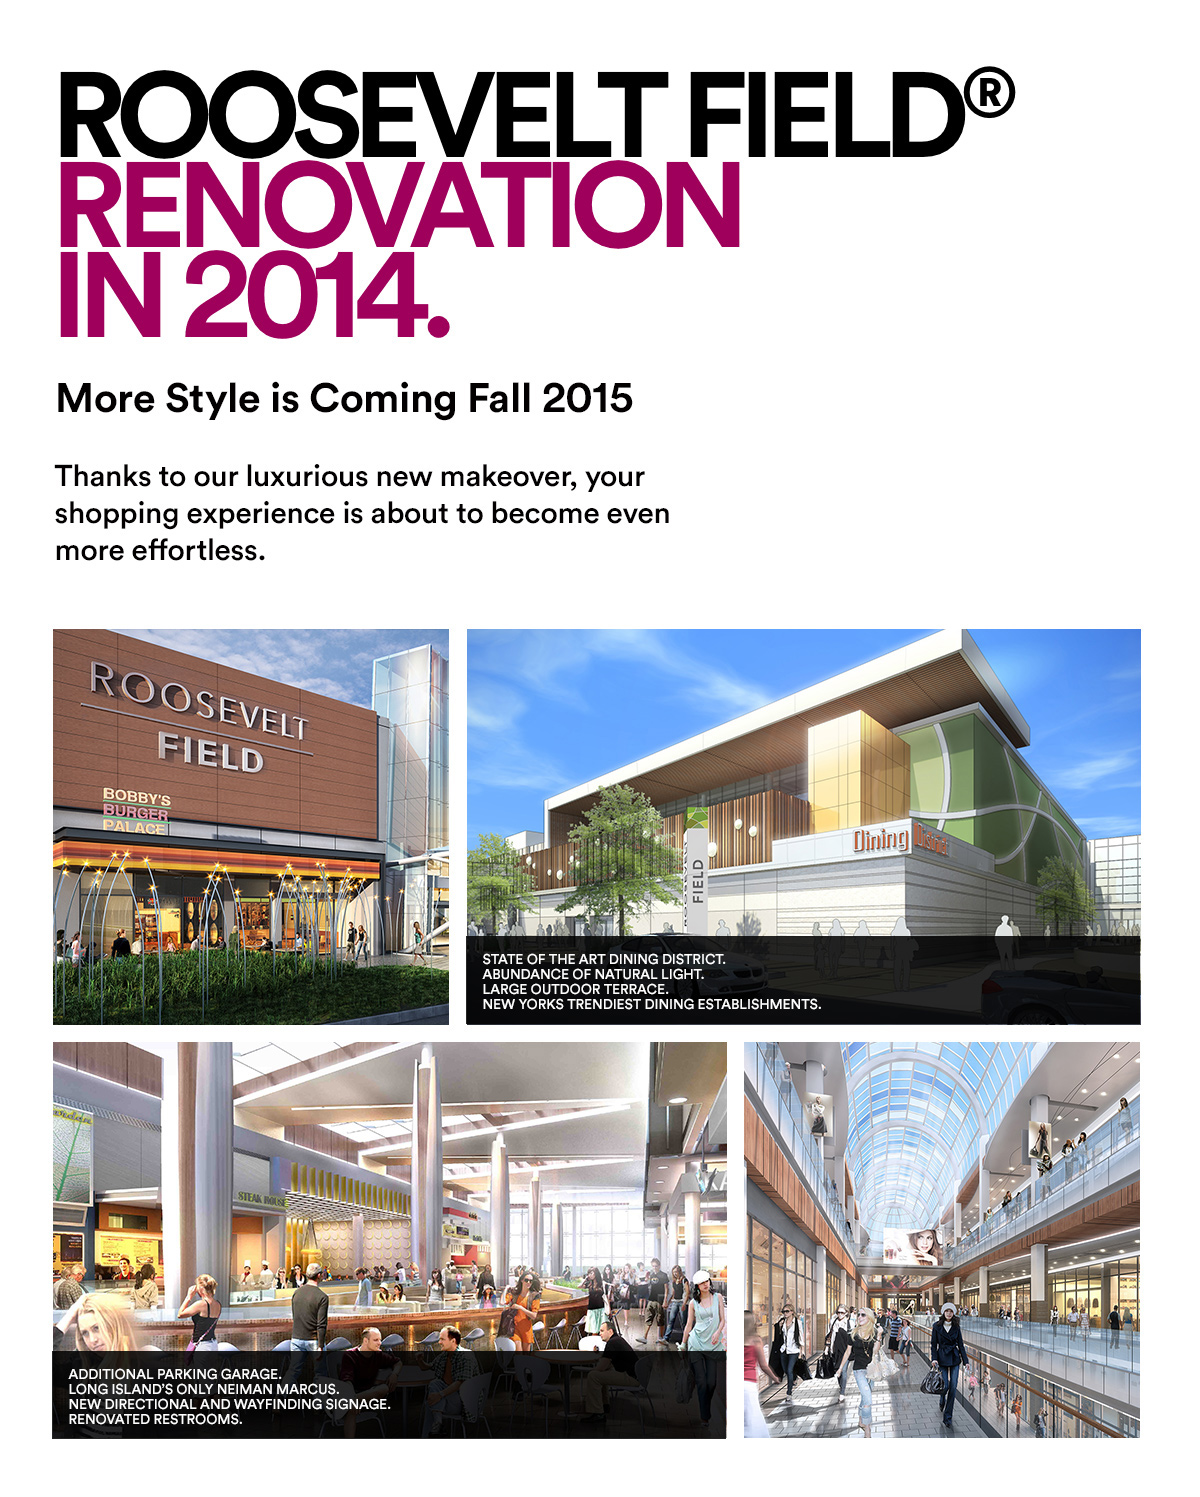 ROOSEVELT FIELD® RENOVATION IN 2014.